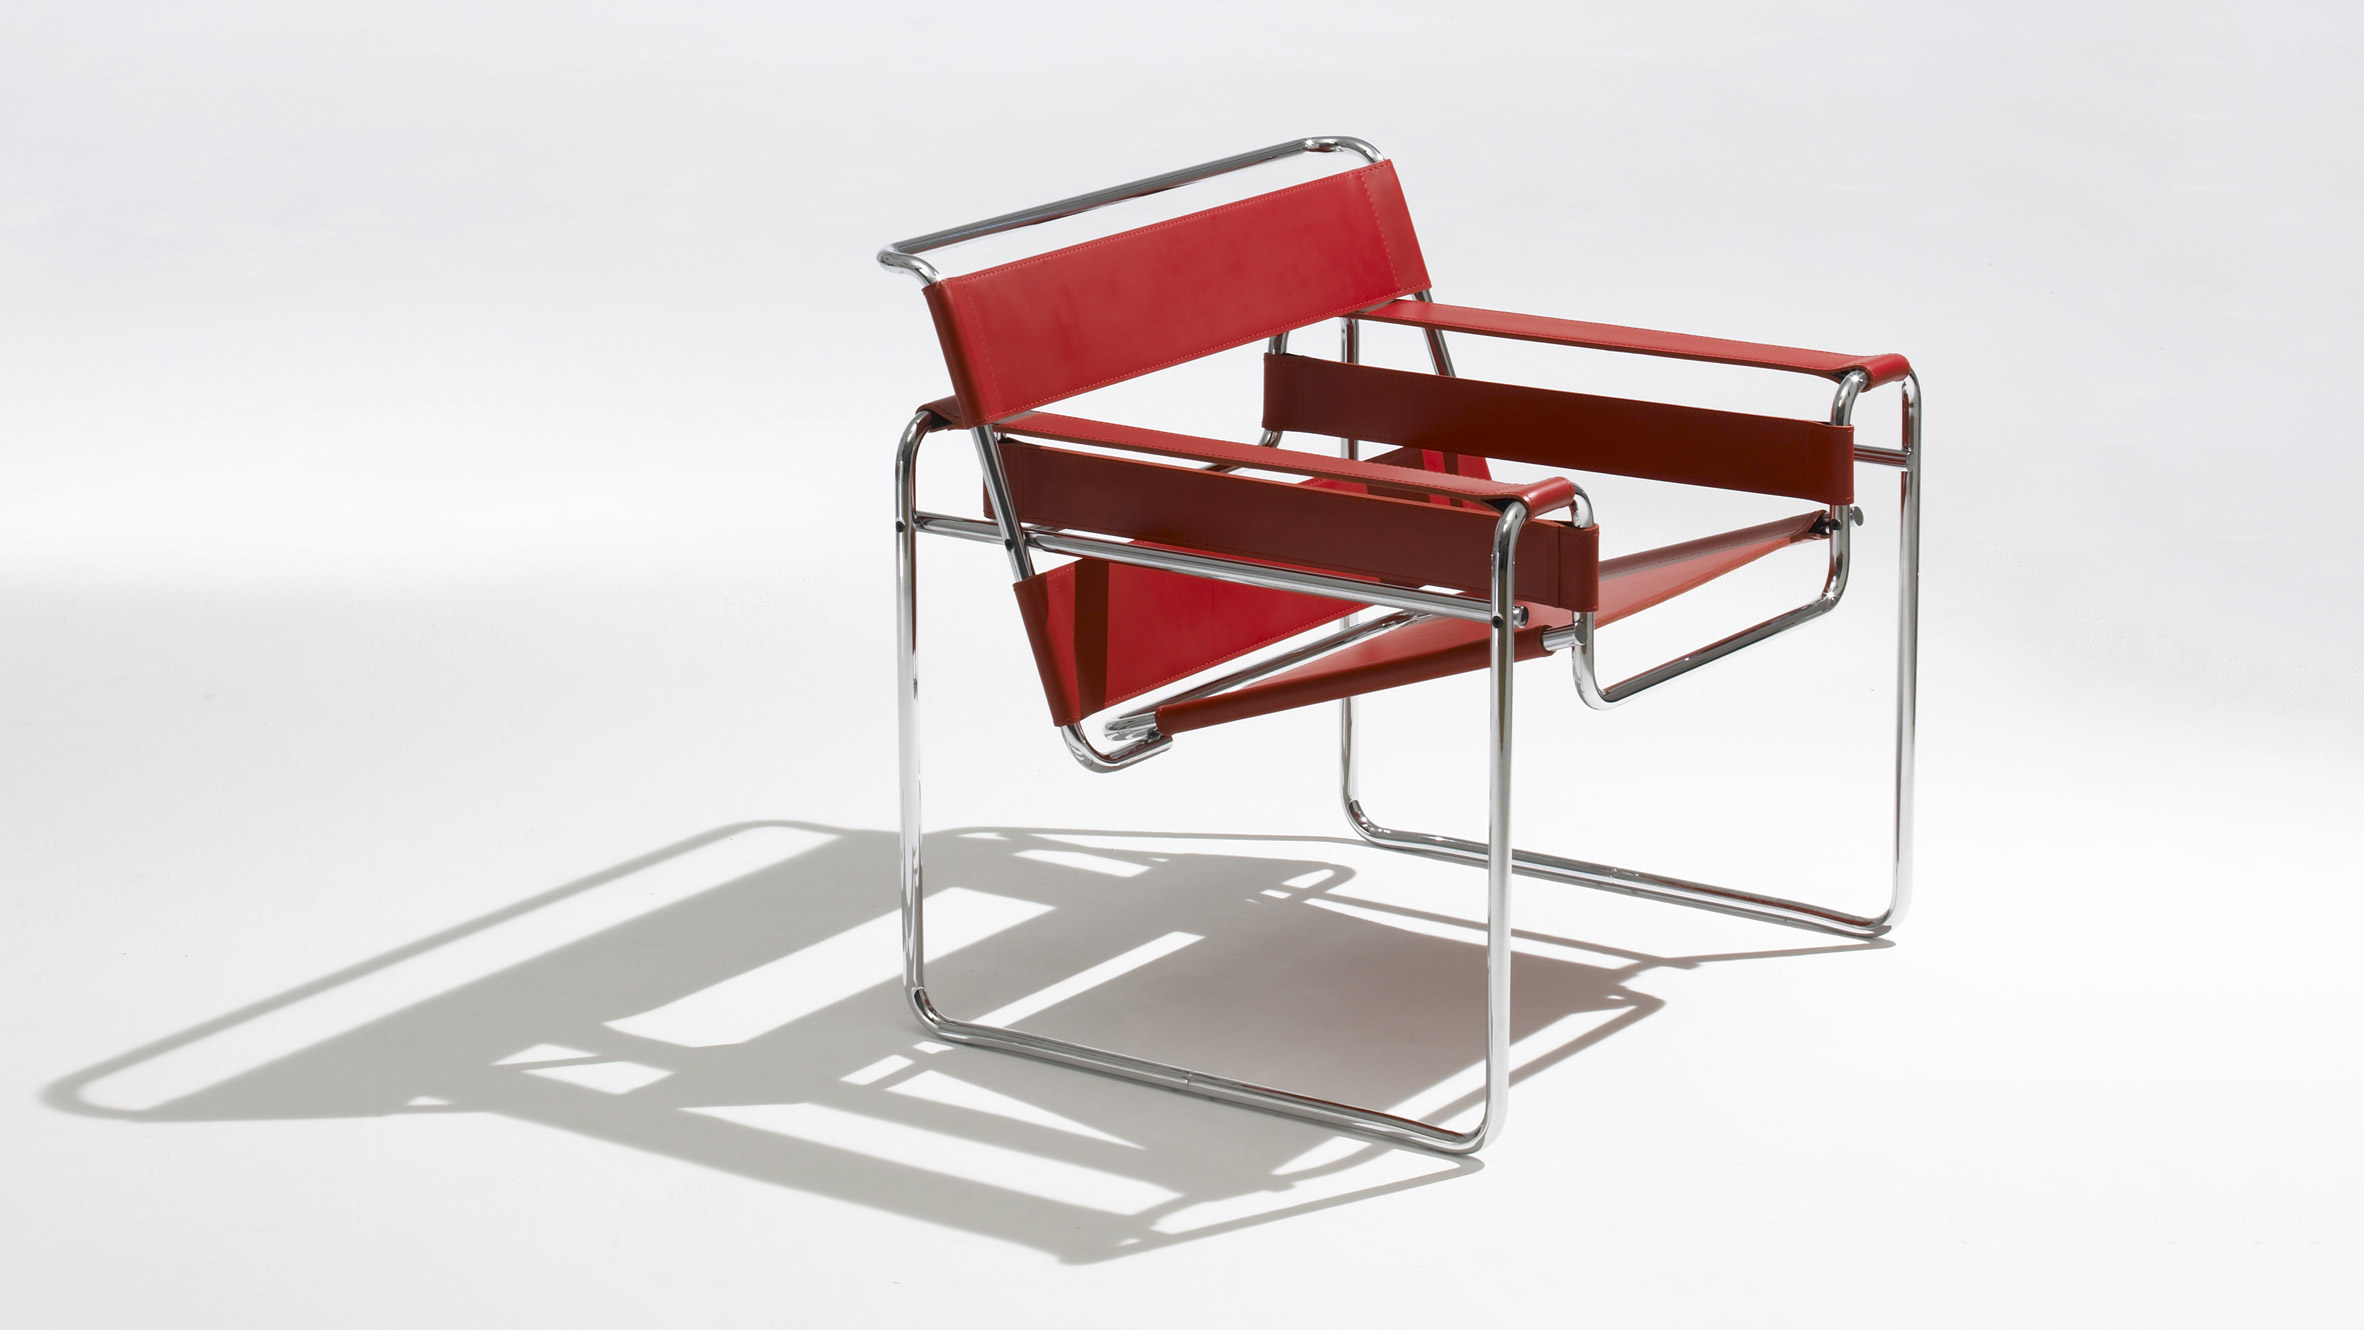 Bauhaus product designers valued function above all, which led to groundbreaking designs.